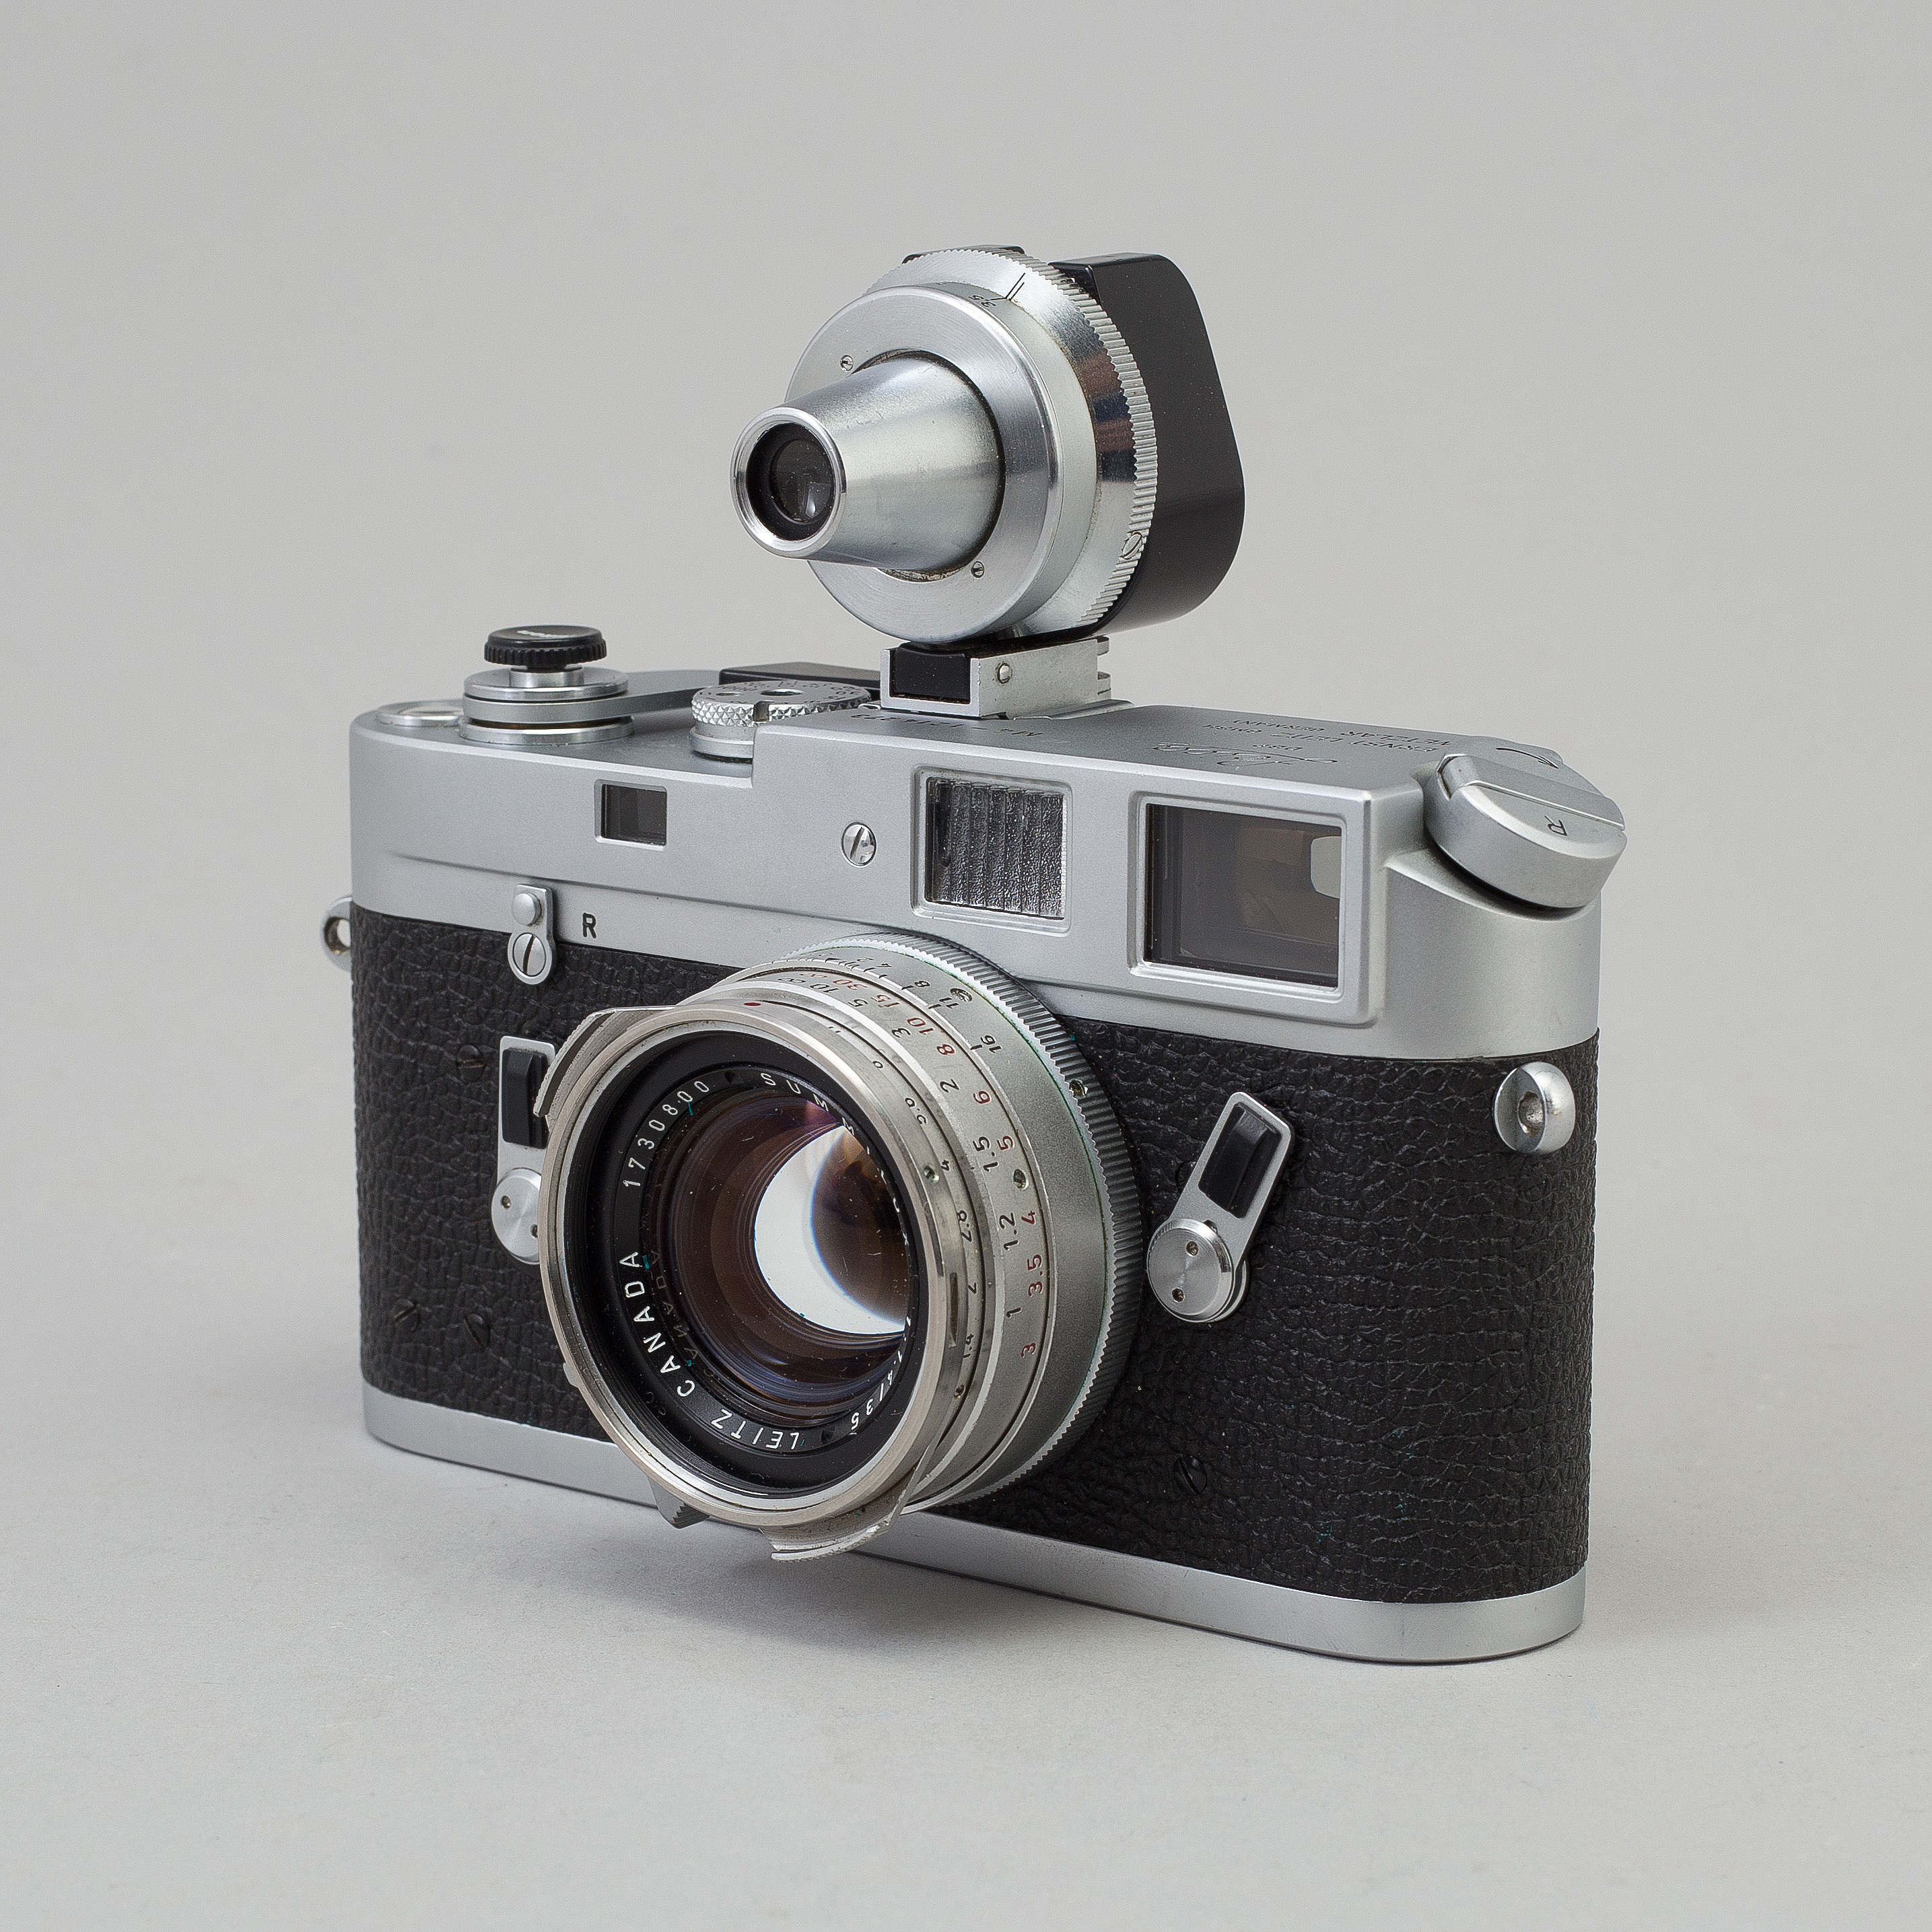 A chome body Leica M4 camera from Wetzlar 1968  With